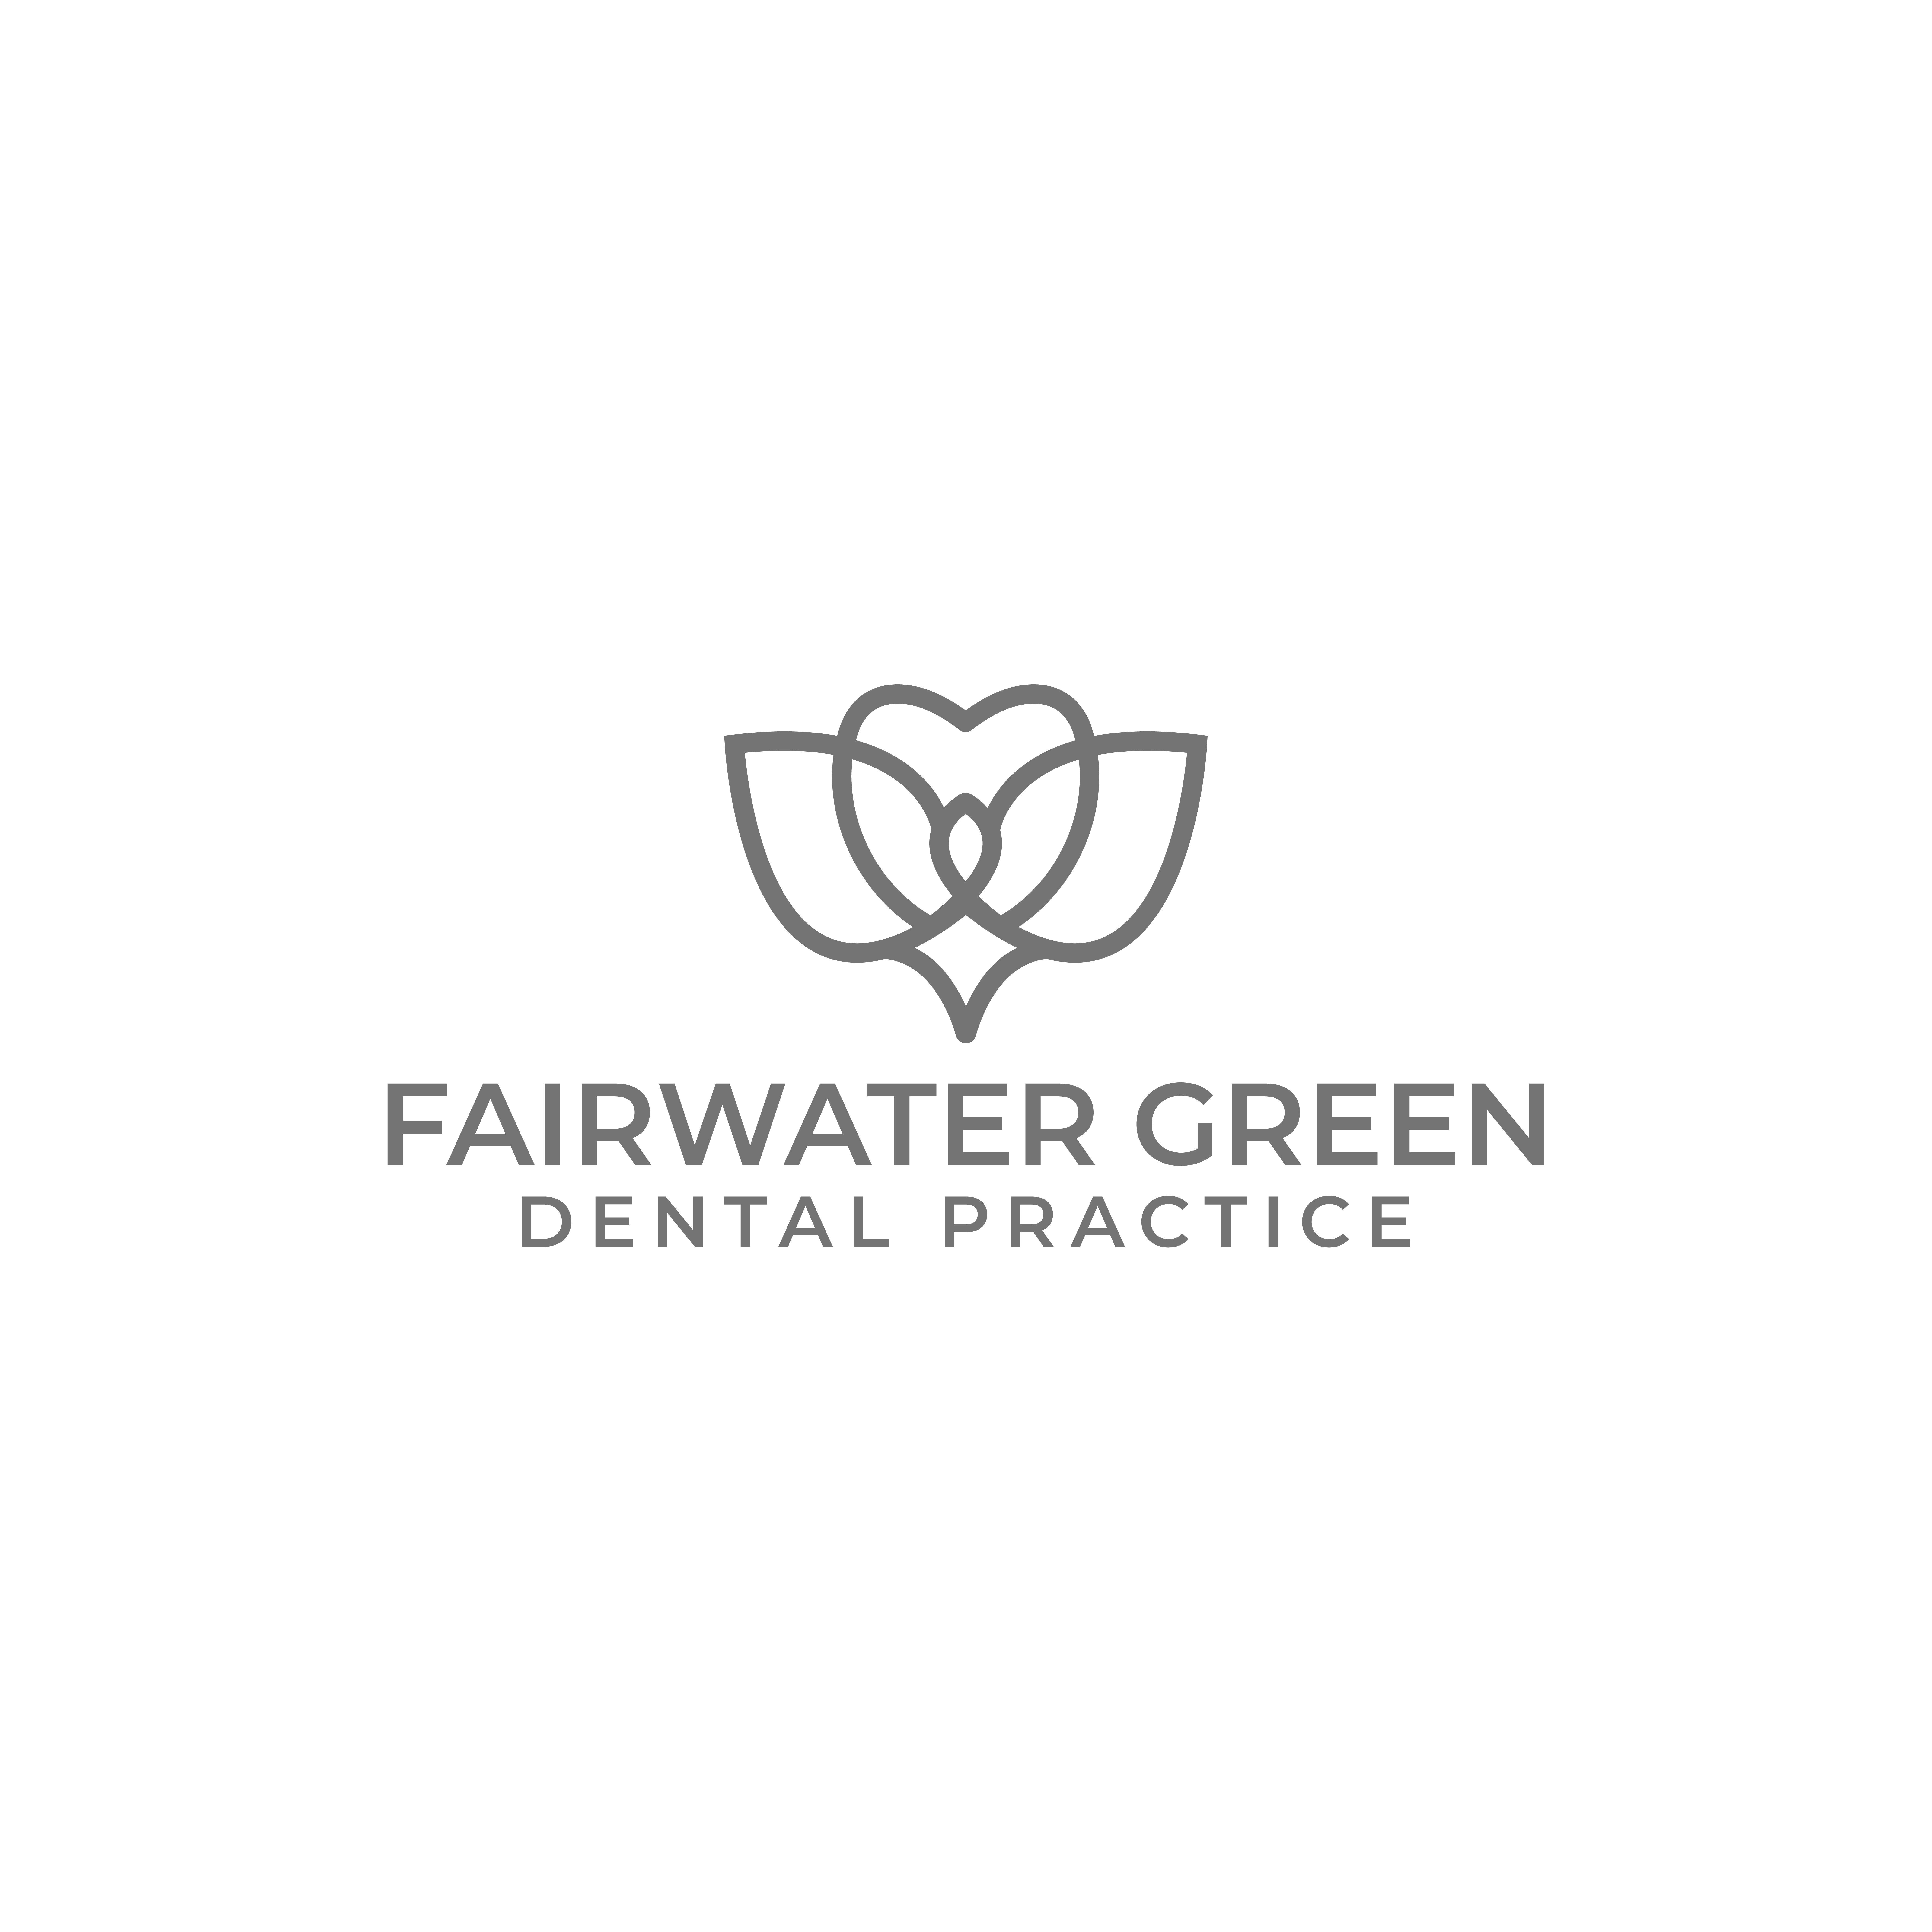 Design an elegant logo for a family dental practice that also does cosmetics